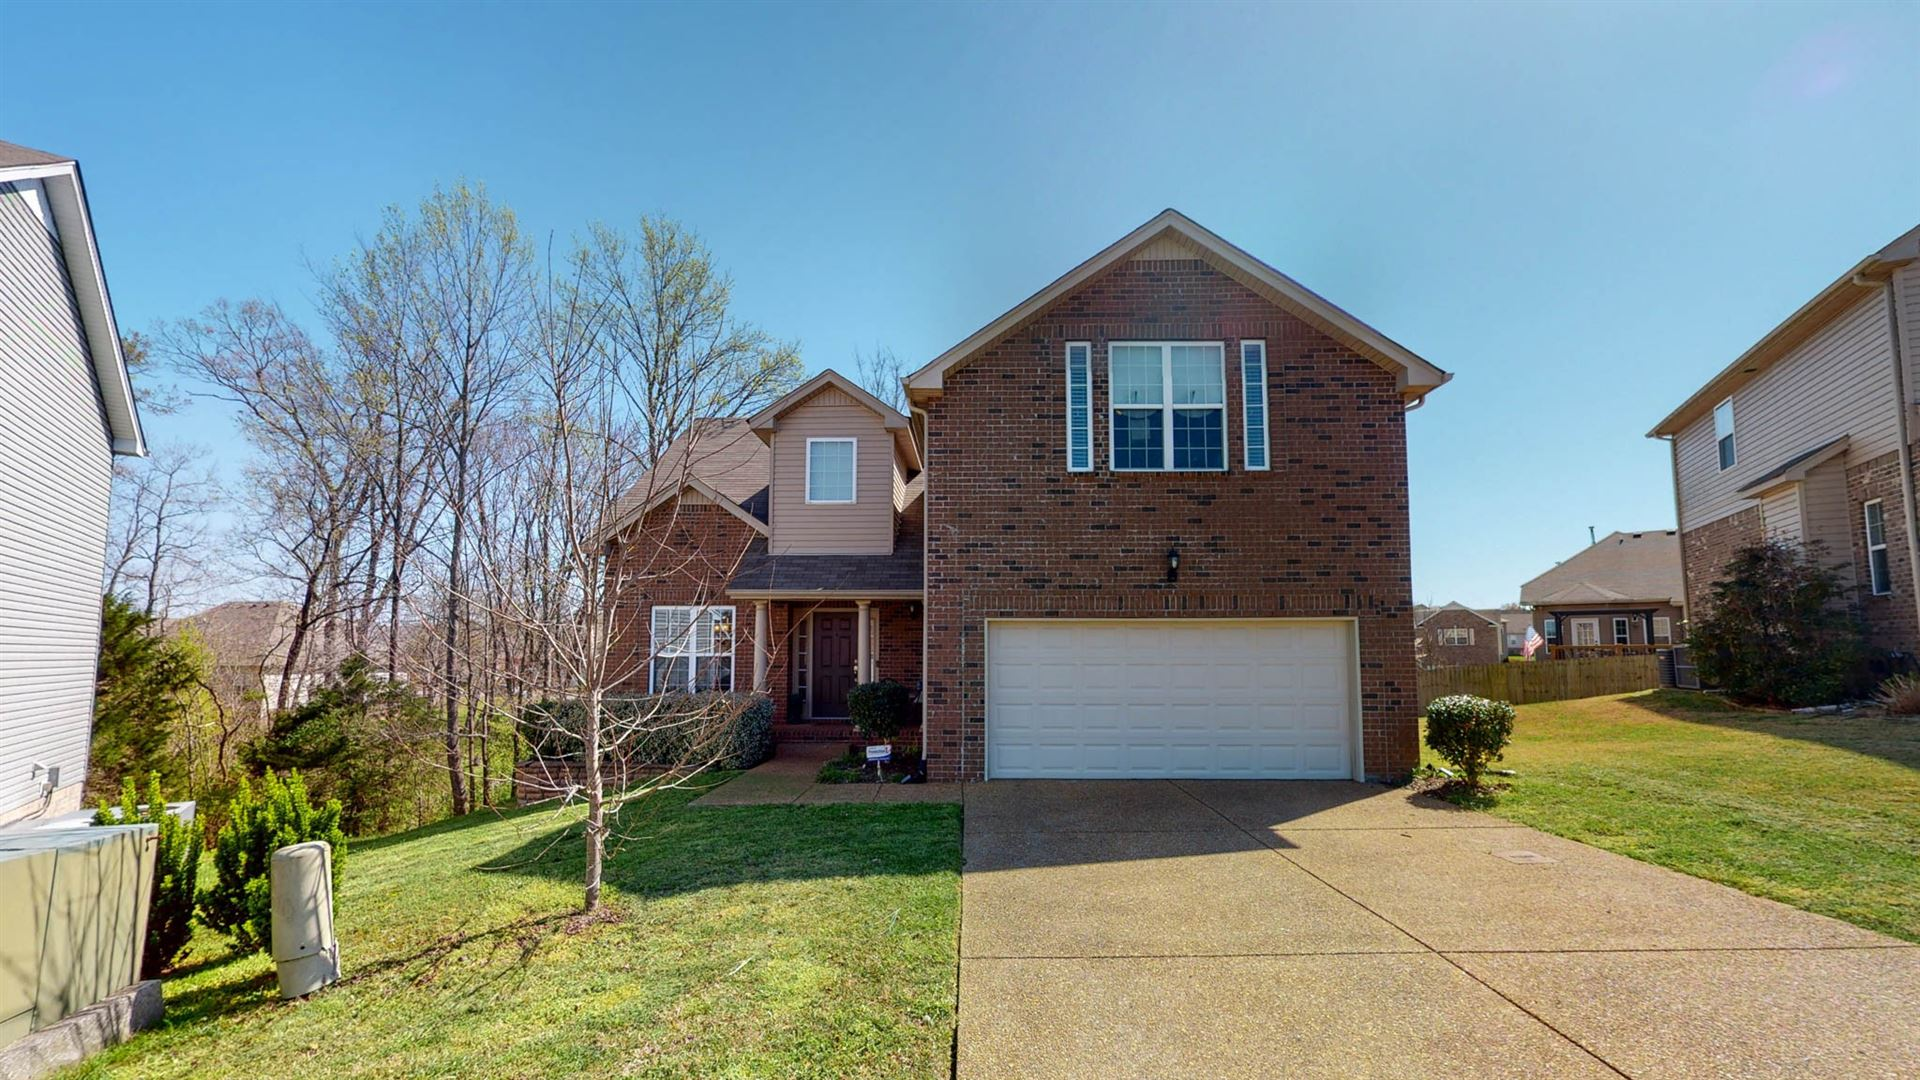 1208 Sundown Ct, Antioch, TN 37013 - MLS#: 2241726